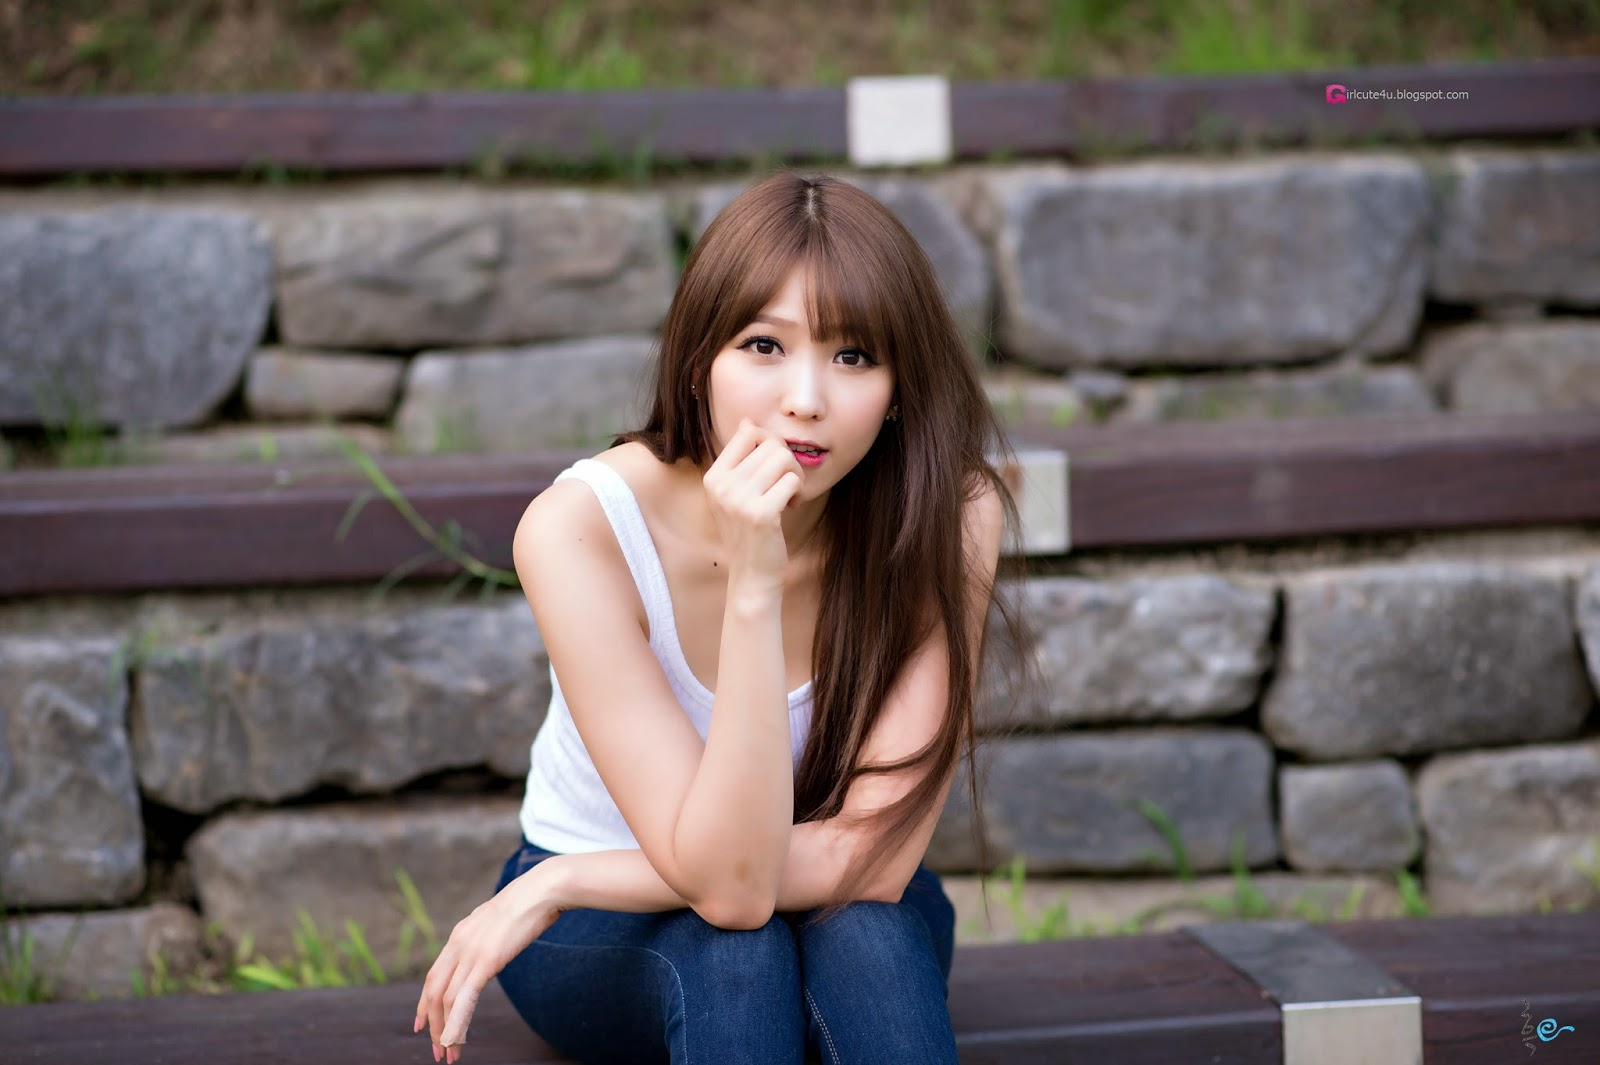 1 Lovely Lee Eun Hye In Outdoor Photo Shoot - very cute asian girl - girlcute4u.blogspot.com